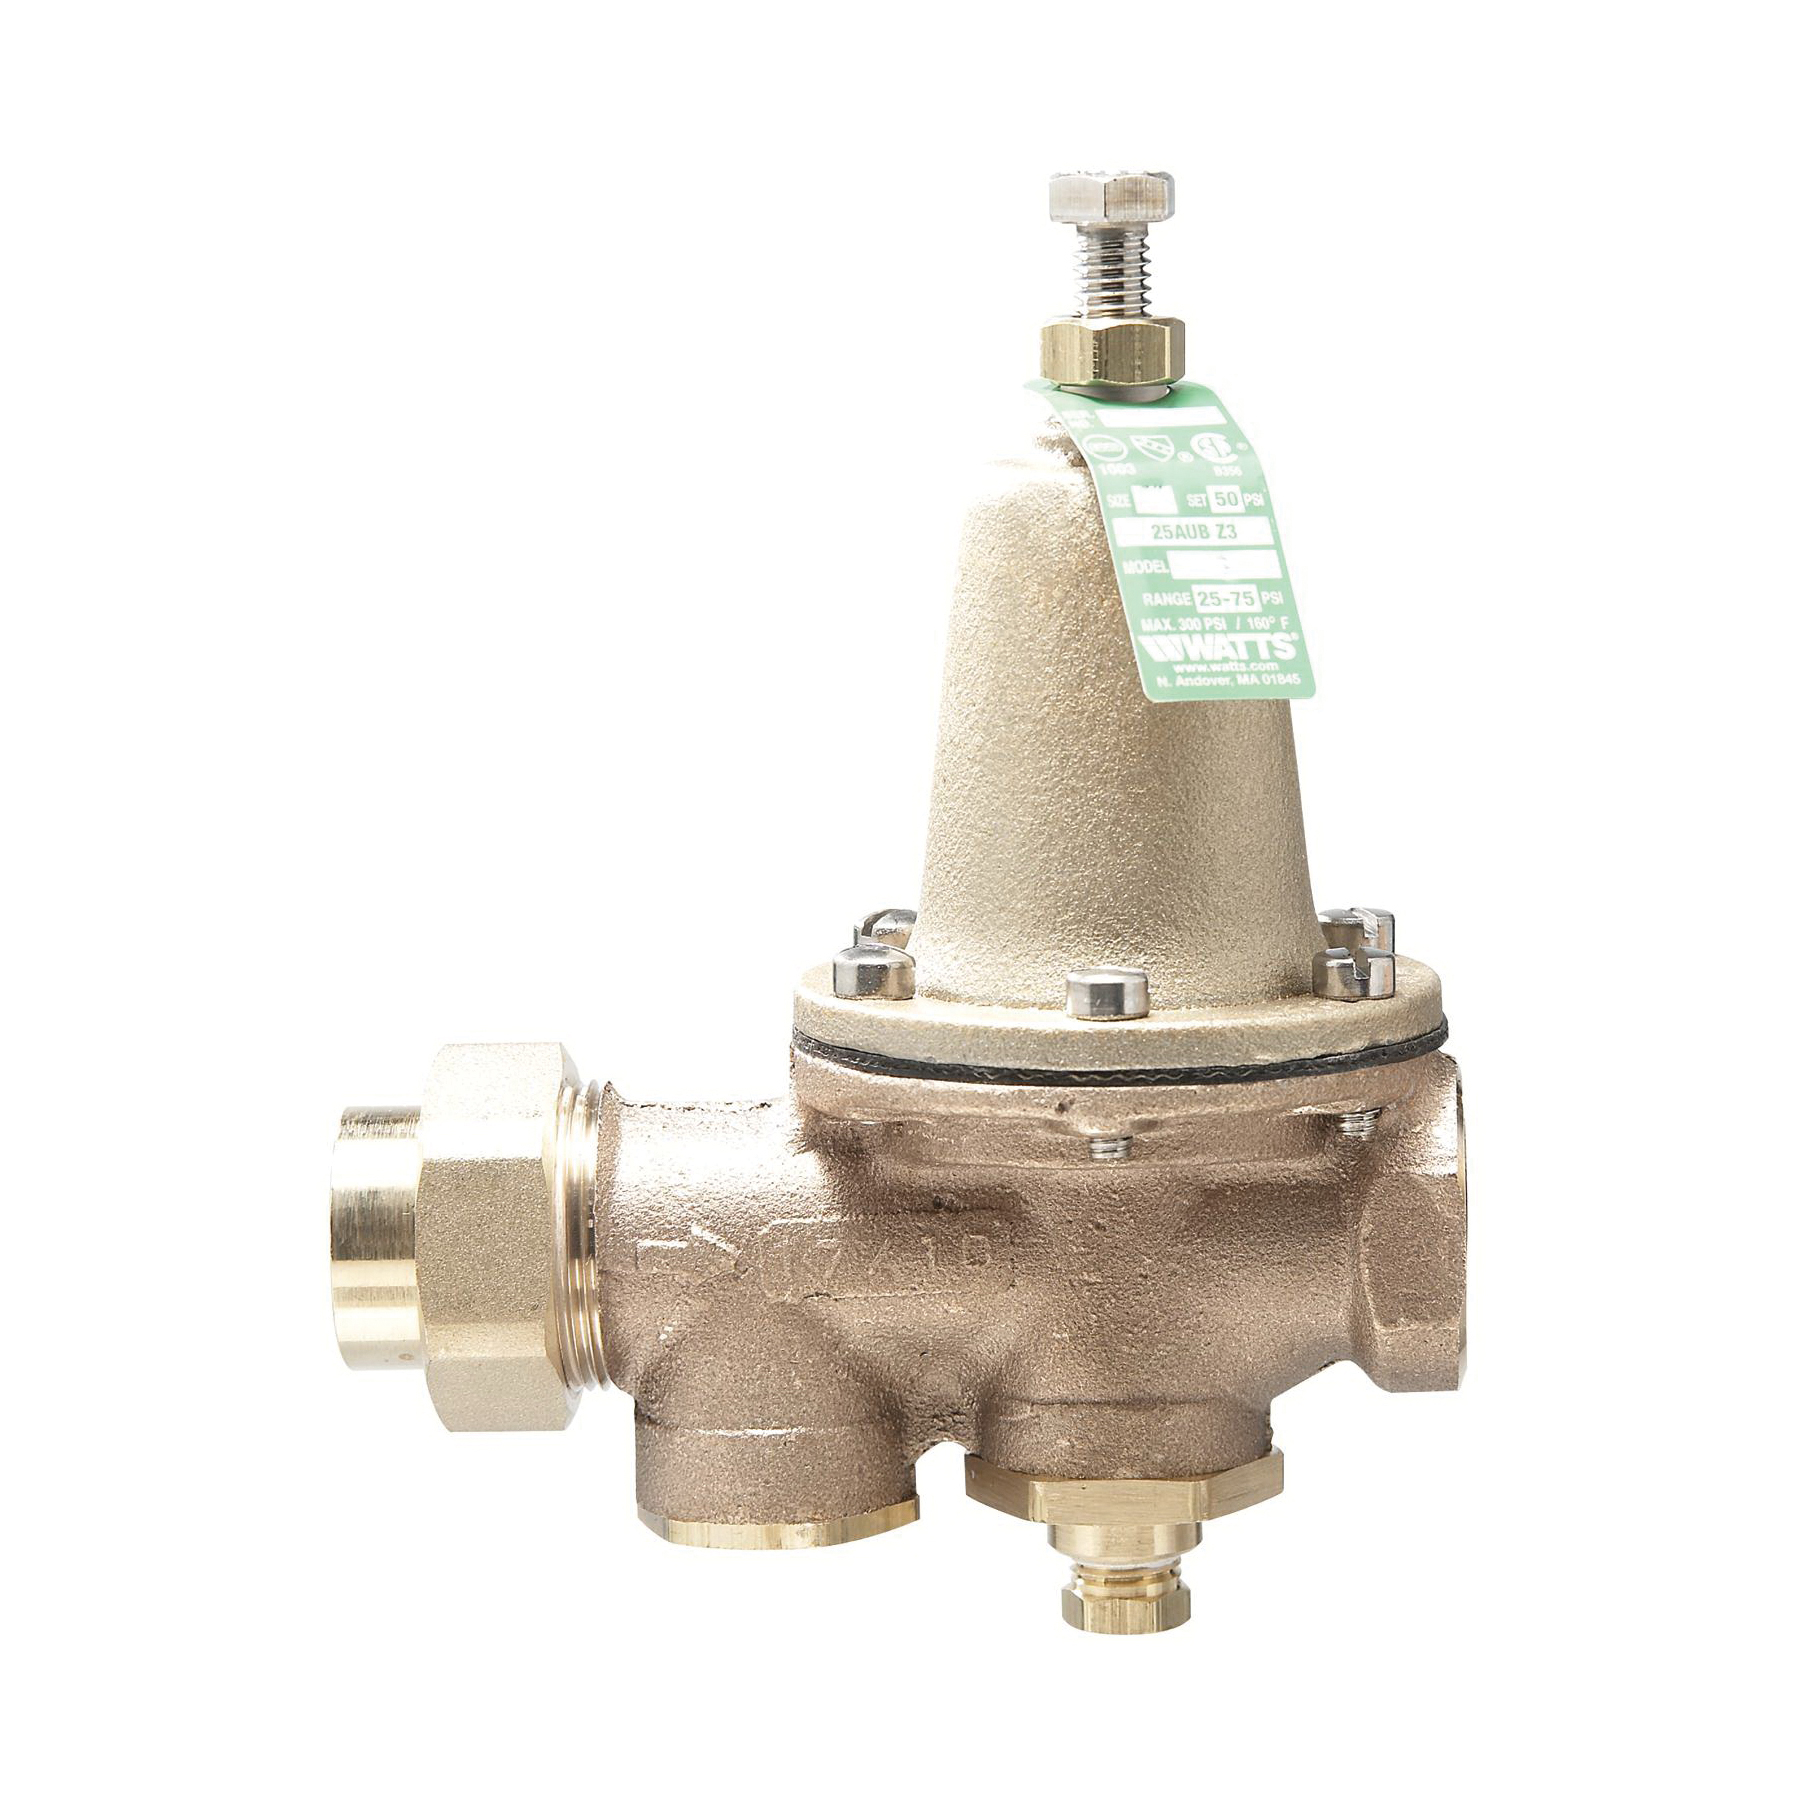 WATTS® 0009278 LF25AUB-Z3 Standard Pressure Reducing Valve, 3/4 in, FNPT, 25 to 75 psi, Copper Silicon Alloy Body